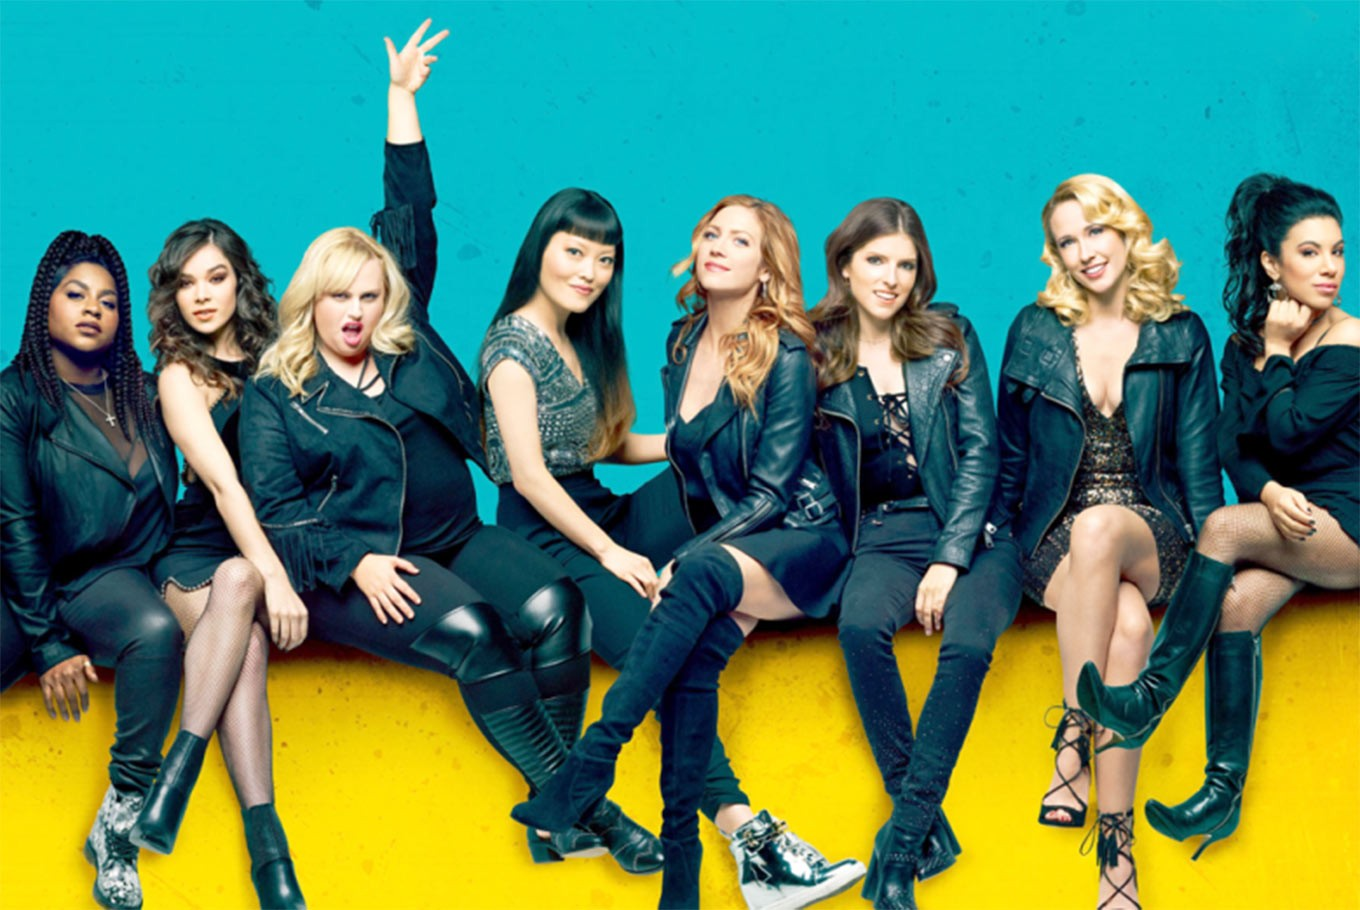 Pitch perfect 3 one last hurrah entertainment the jakarta post pitch perfect 3 one last hurrah voltagebd Choice Image